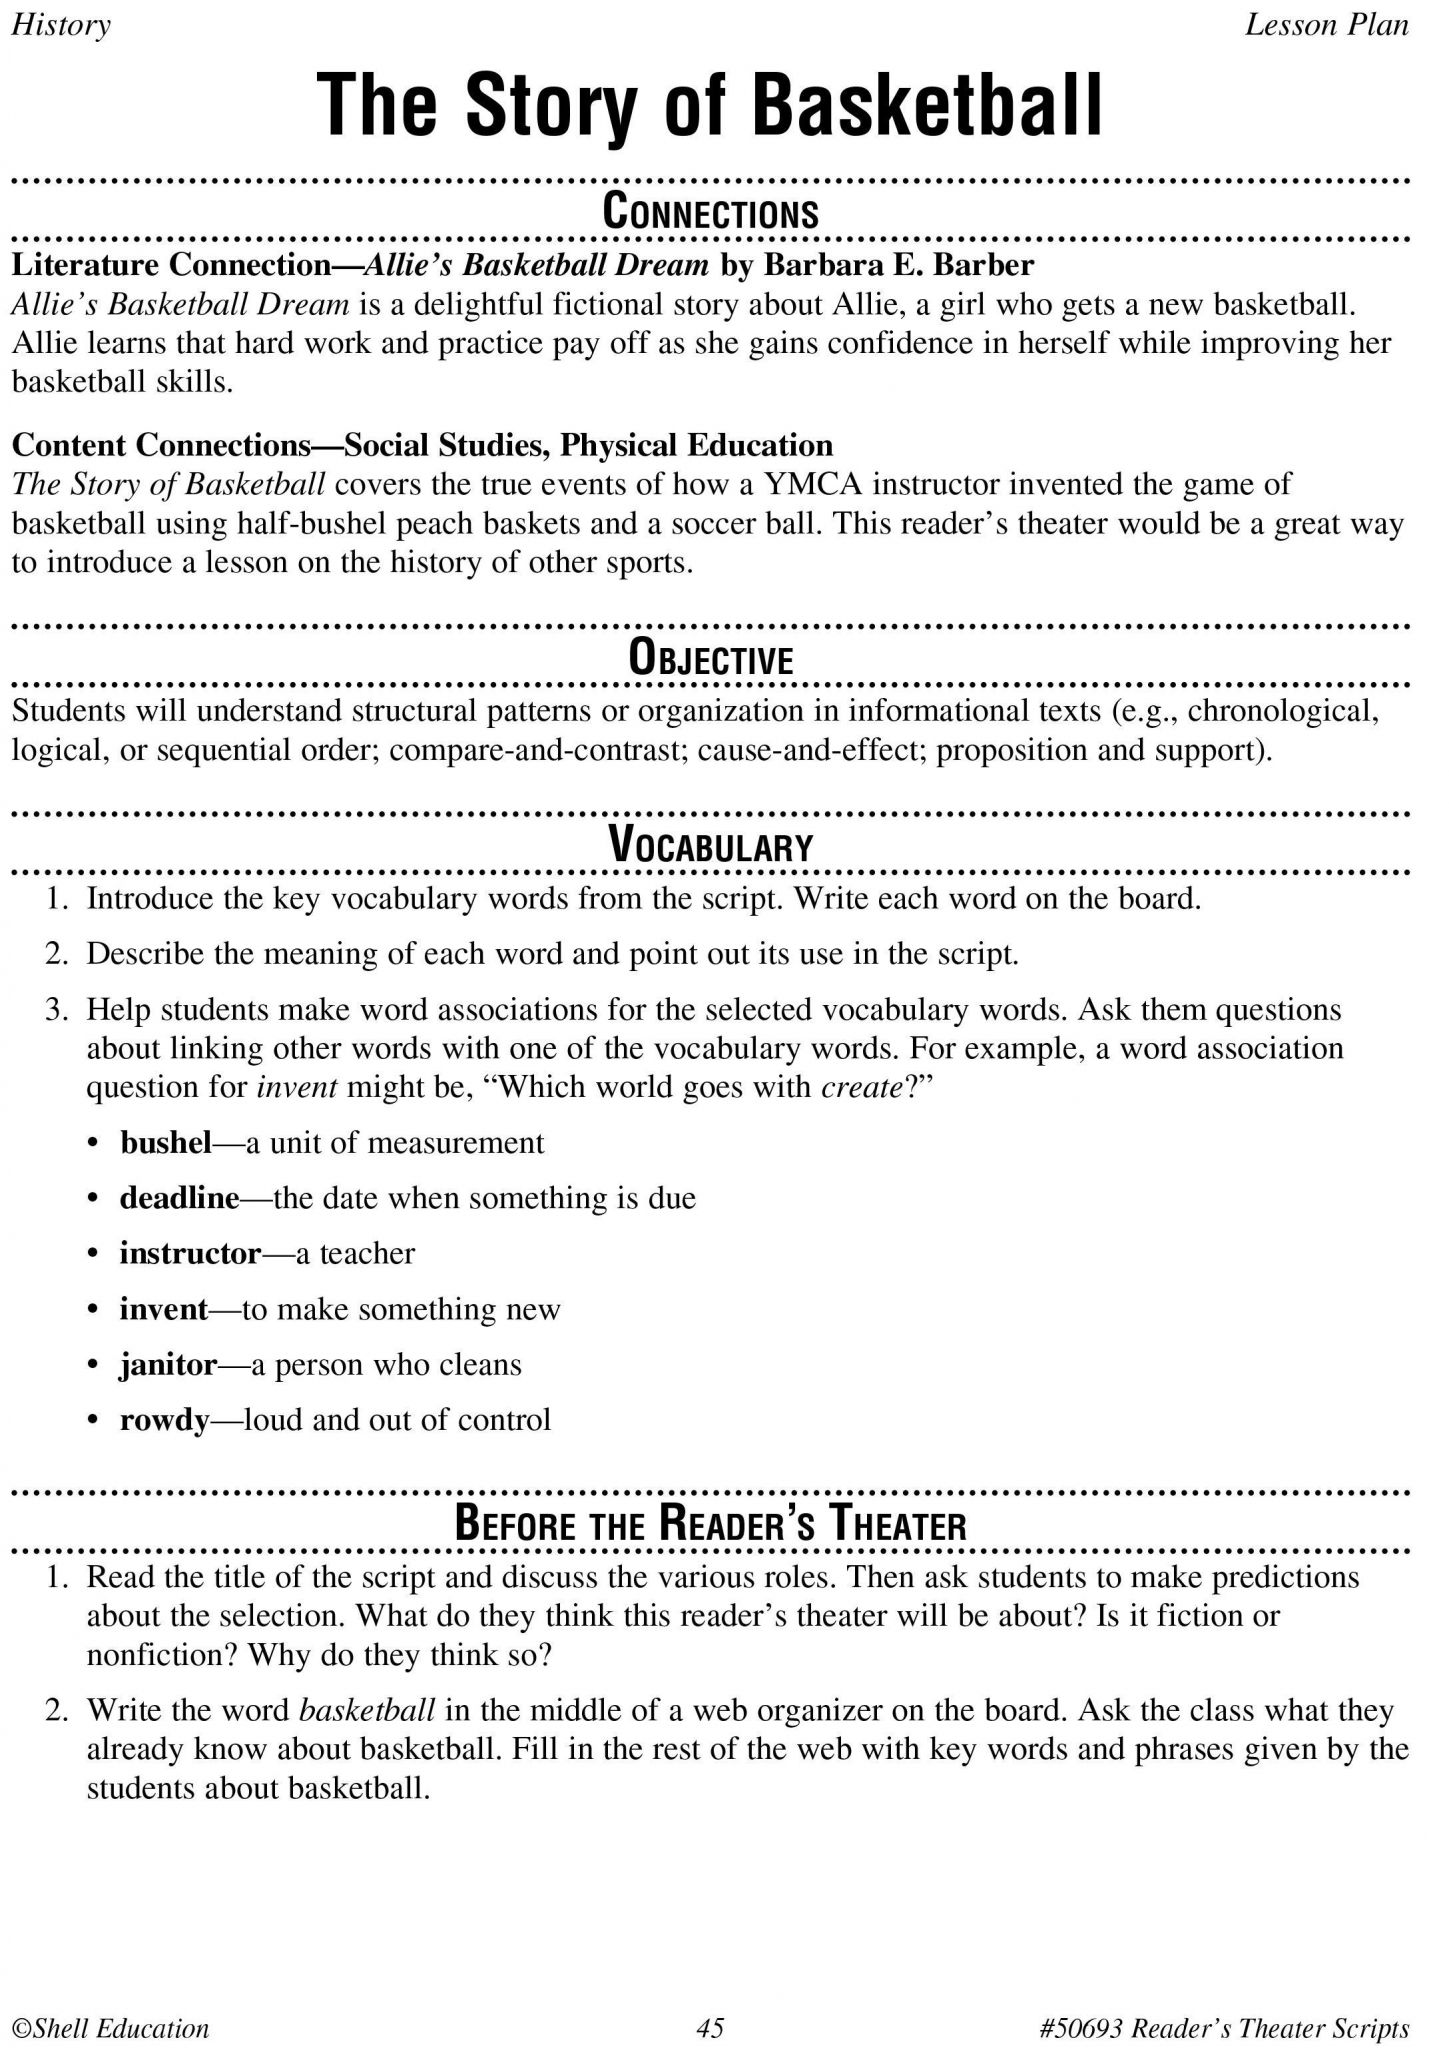 Changing The Constitution Worksheet Answers Icivics